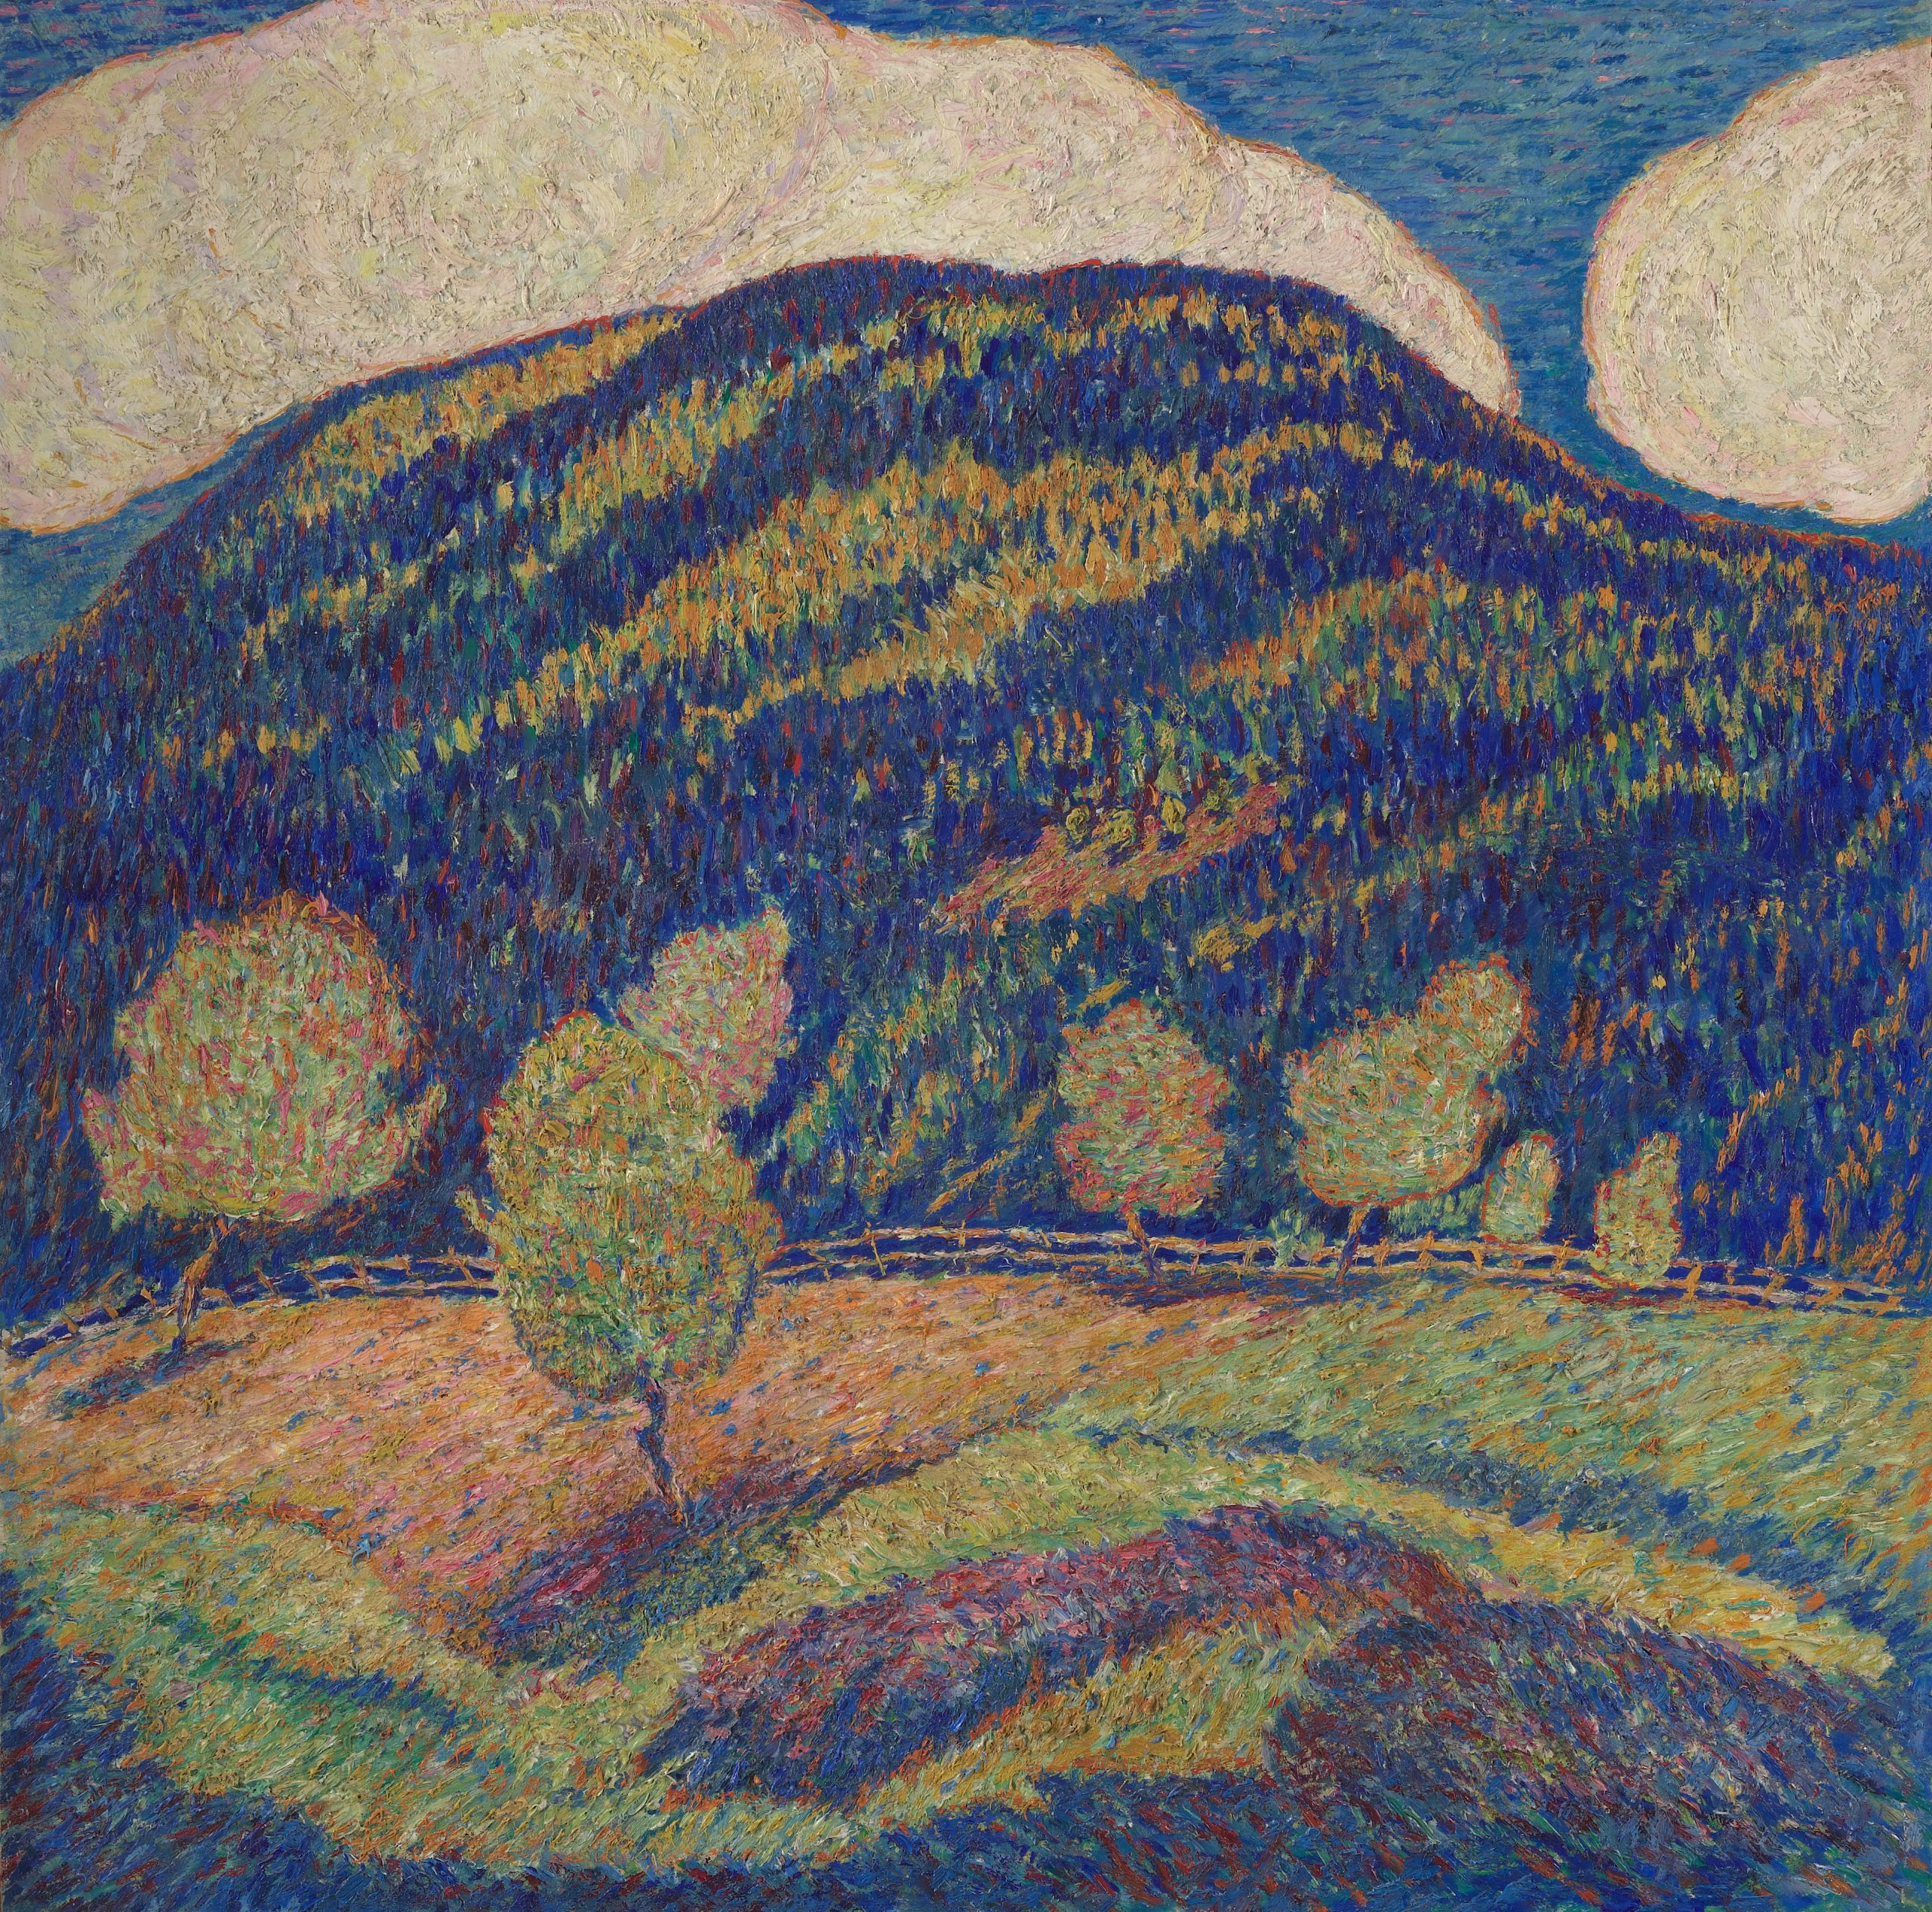 A landscape of a vacant hill using prominent shades of blue, brush markings are impressionistic and create texture within the painting.